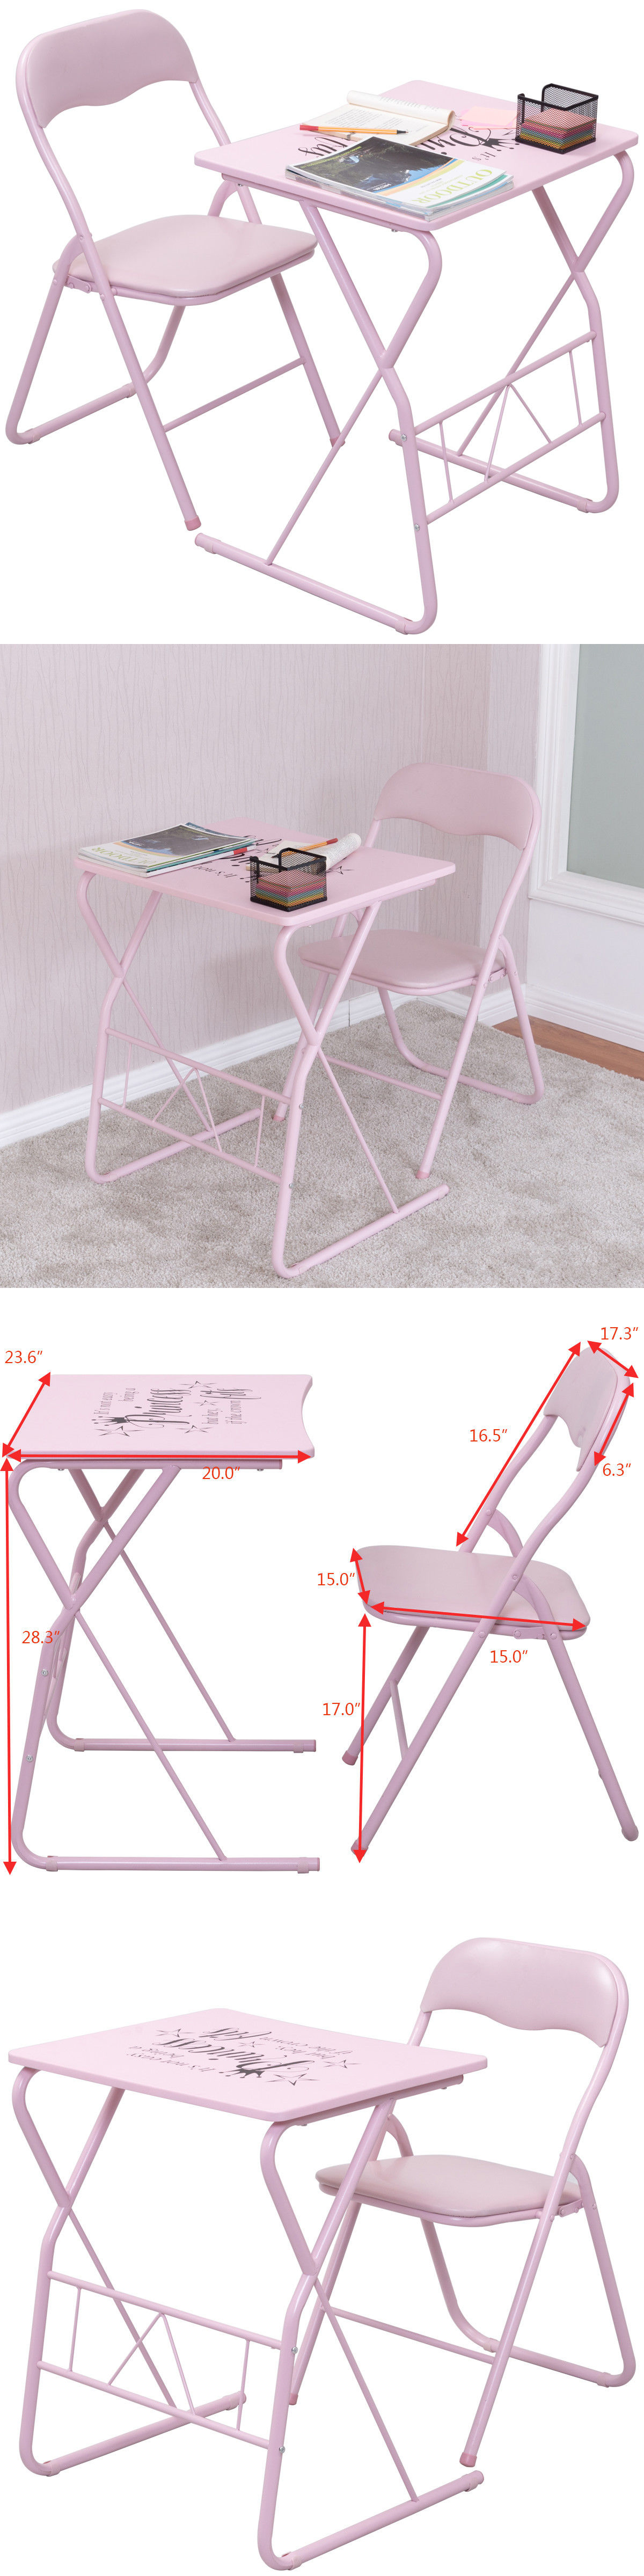 Kids Furniture Kids Folding Table Chair Set Study Writing Desk